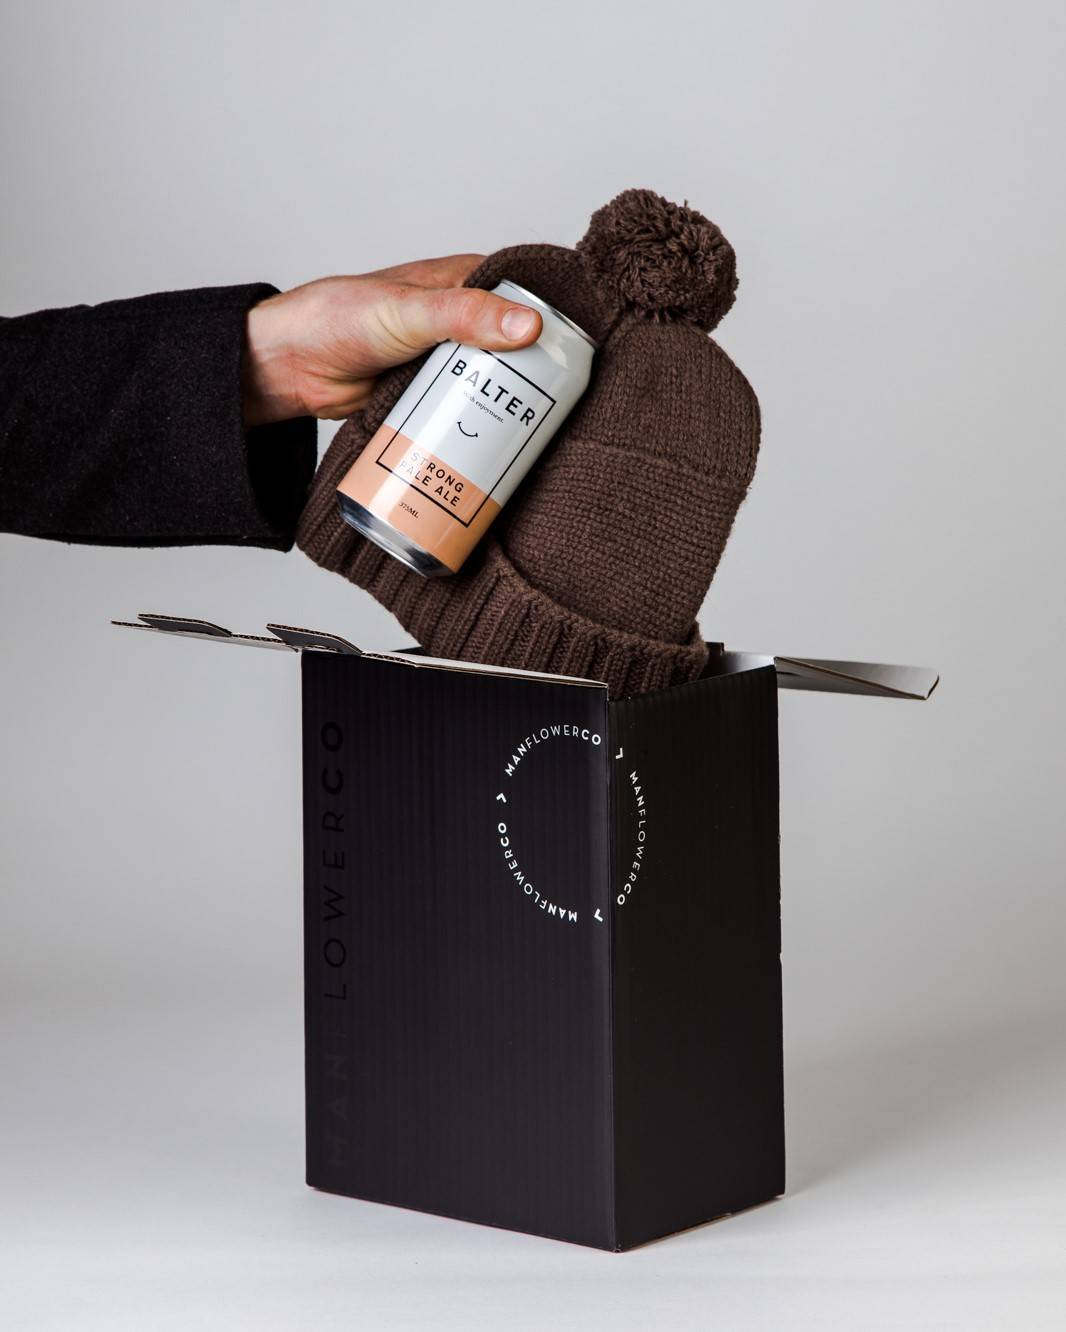 Will & Bear Beanie + Beer, part of Manflower Co's range of Father's Day Gifts.